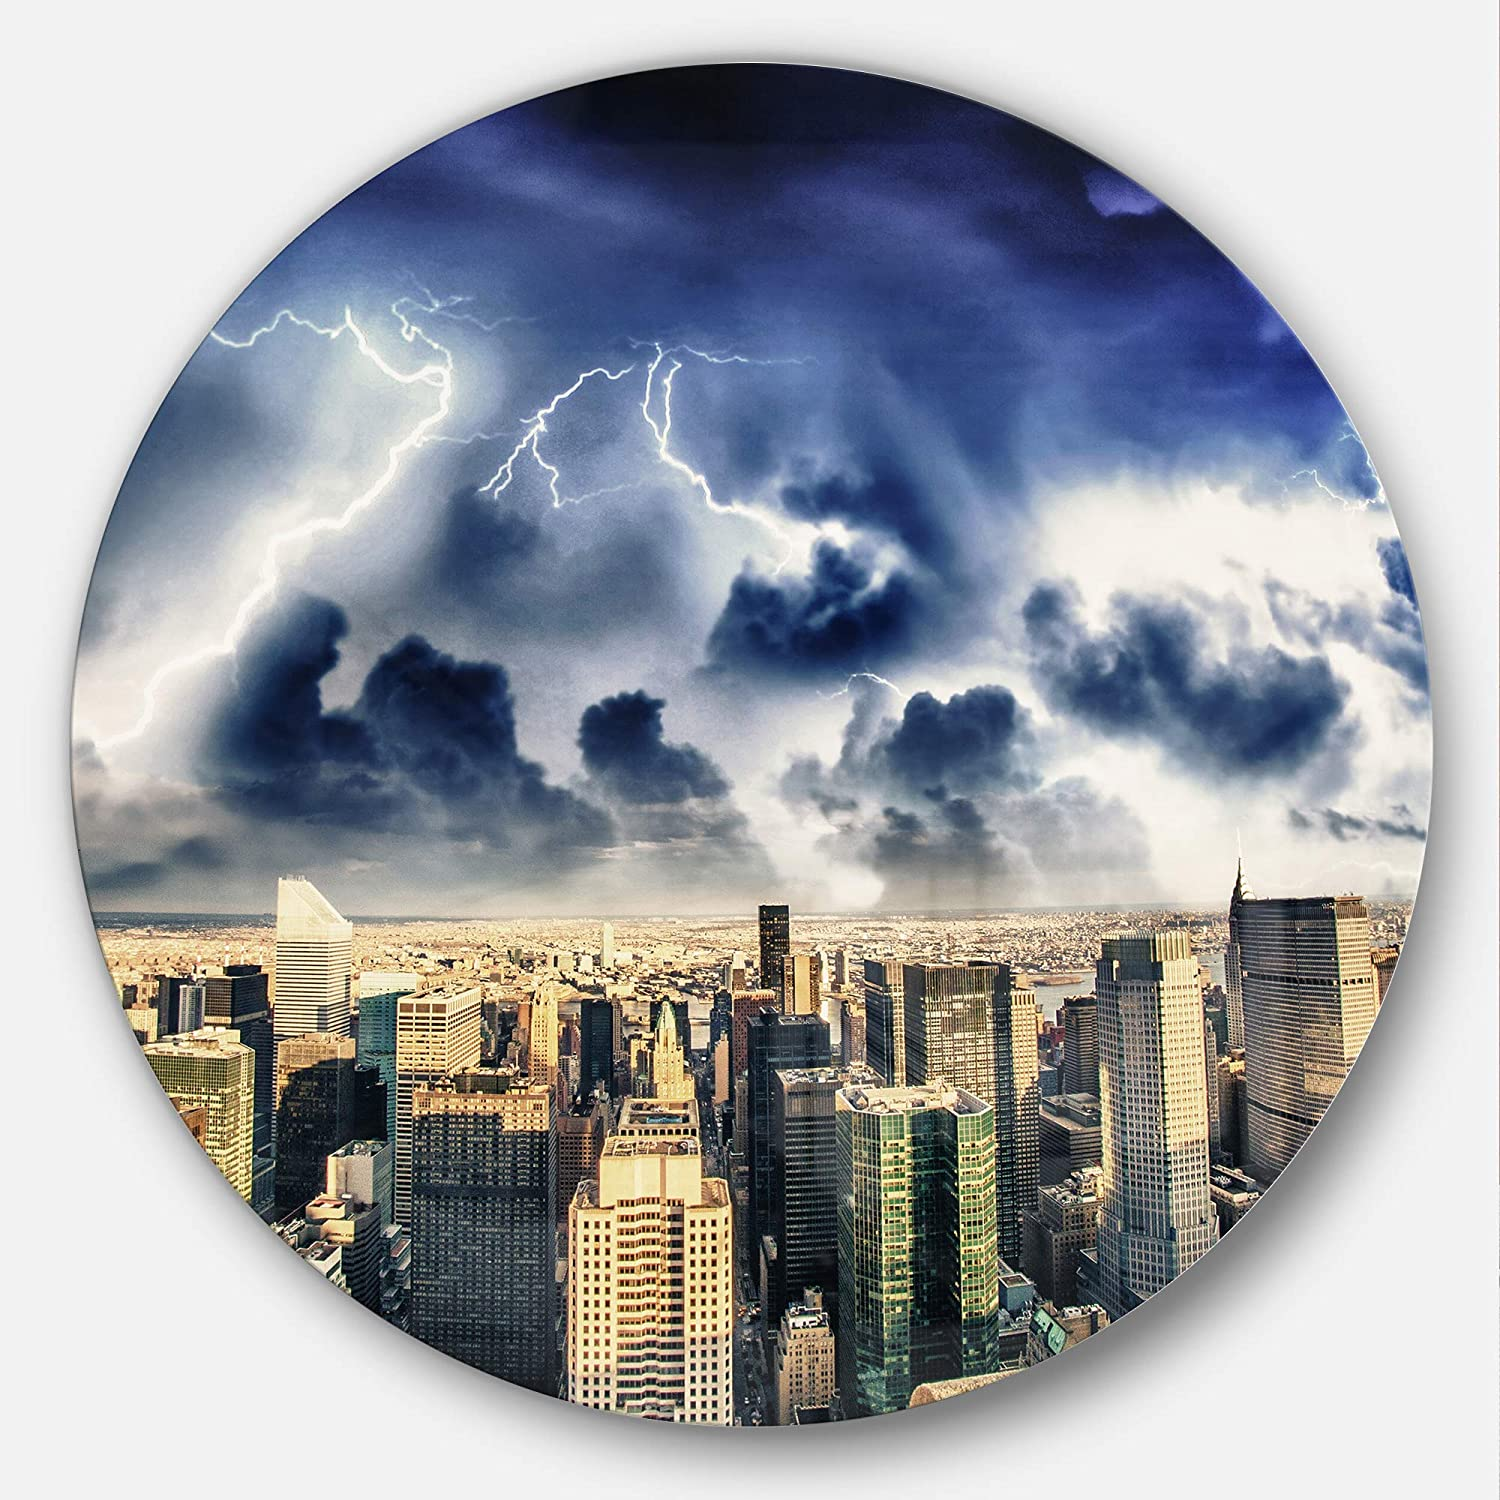 Amazon Com Designart Storm Above Manhattan Skyscrapers Cityscape Photo Large Metal Wall Art Disc Of 23 Inch 23 H X 23 W X 1 D 1p Green Posters Prints